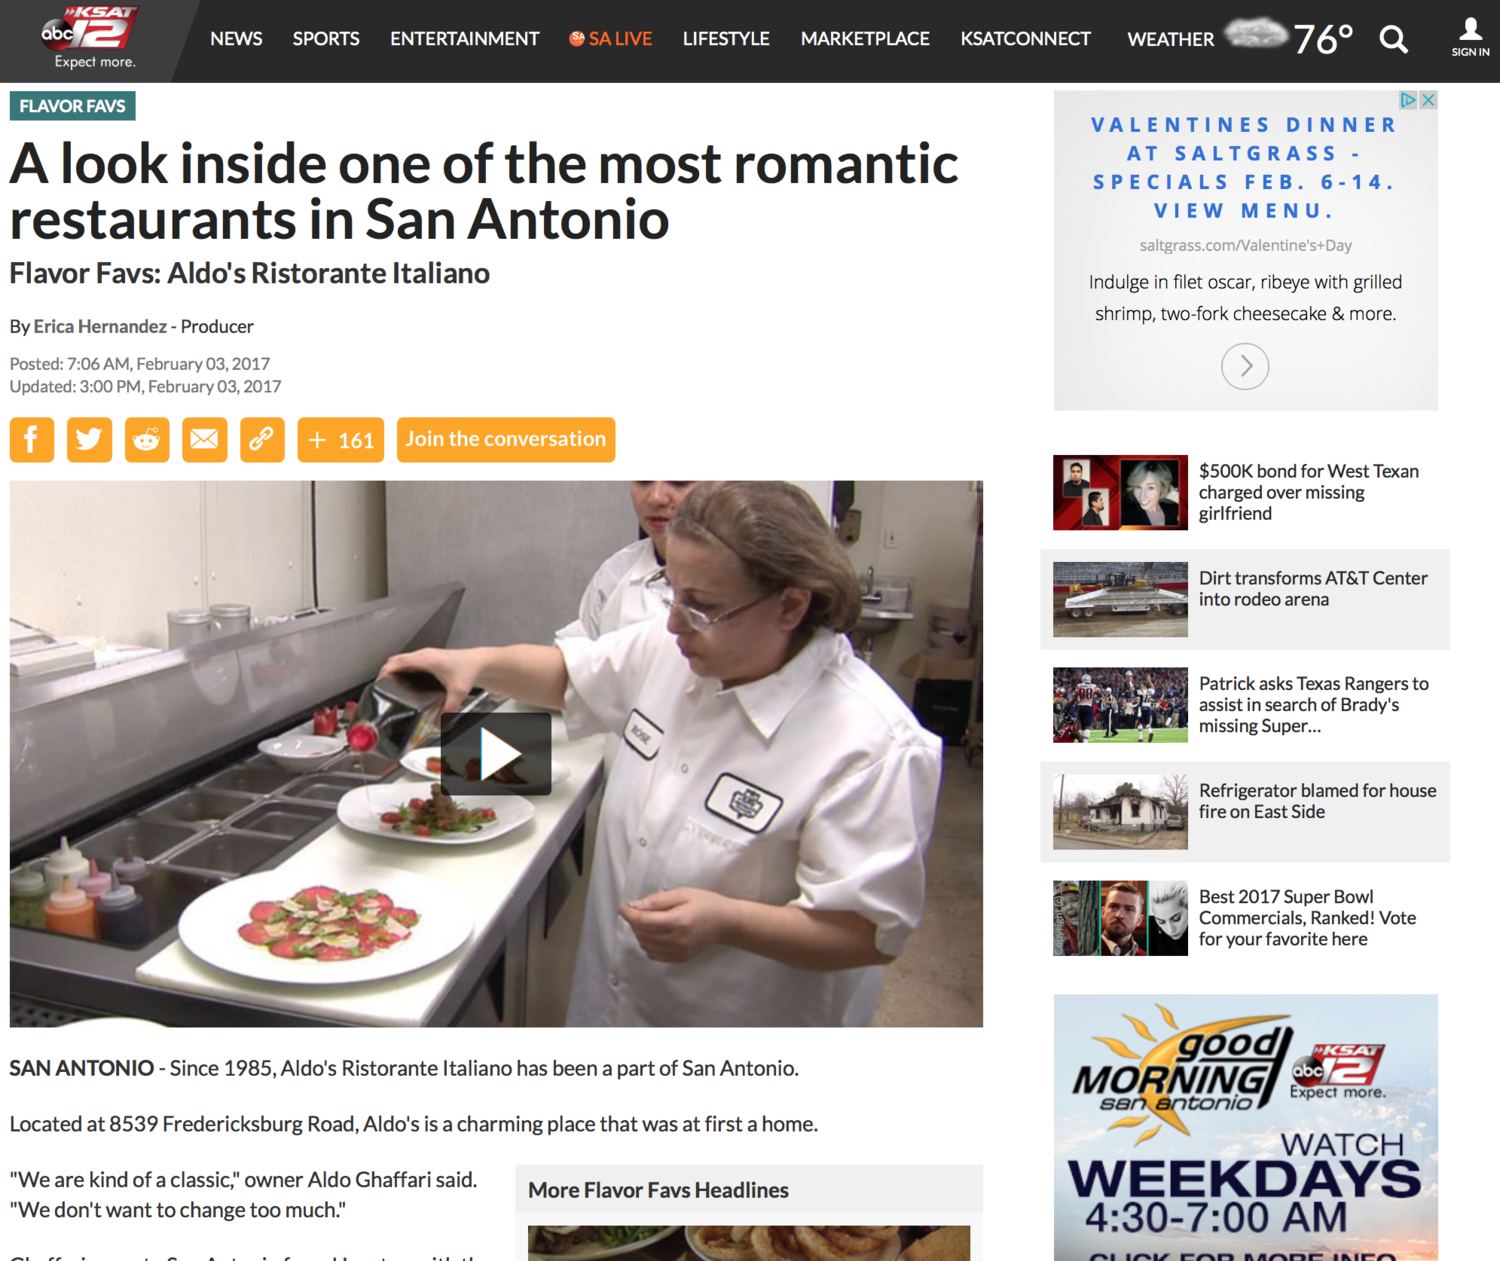 KSAT12: A Look Inside One of the Most Romantic Restaurants in San Antonio